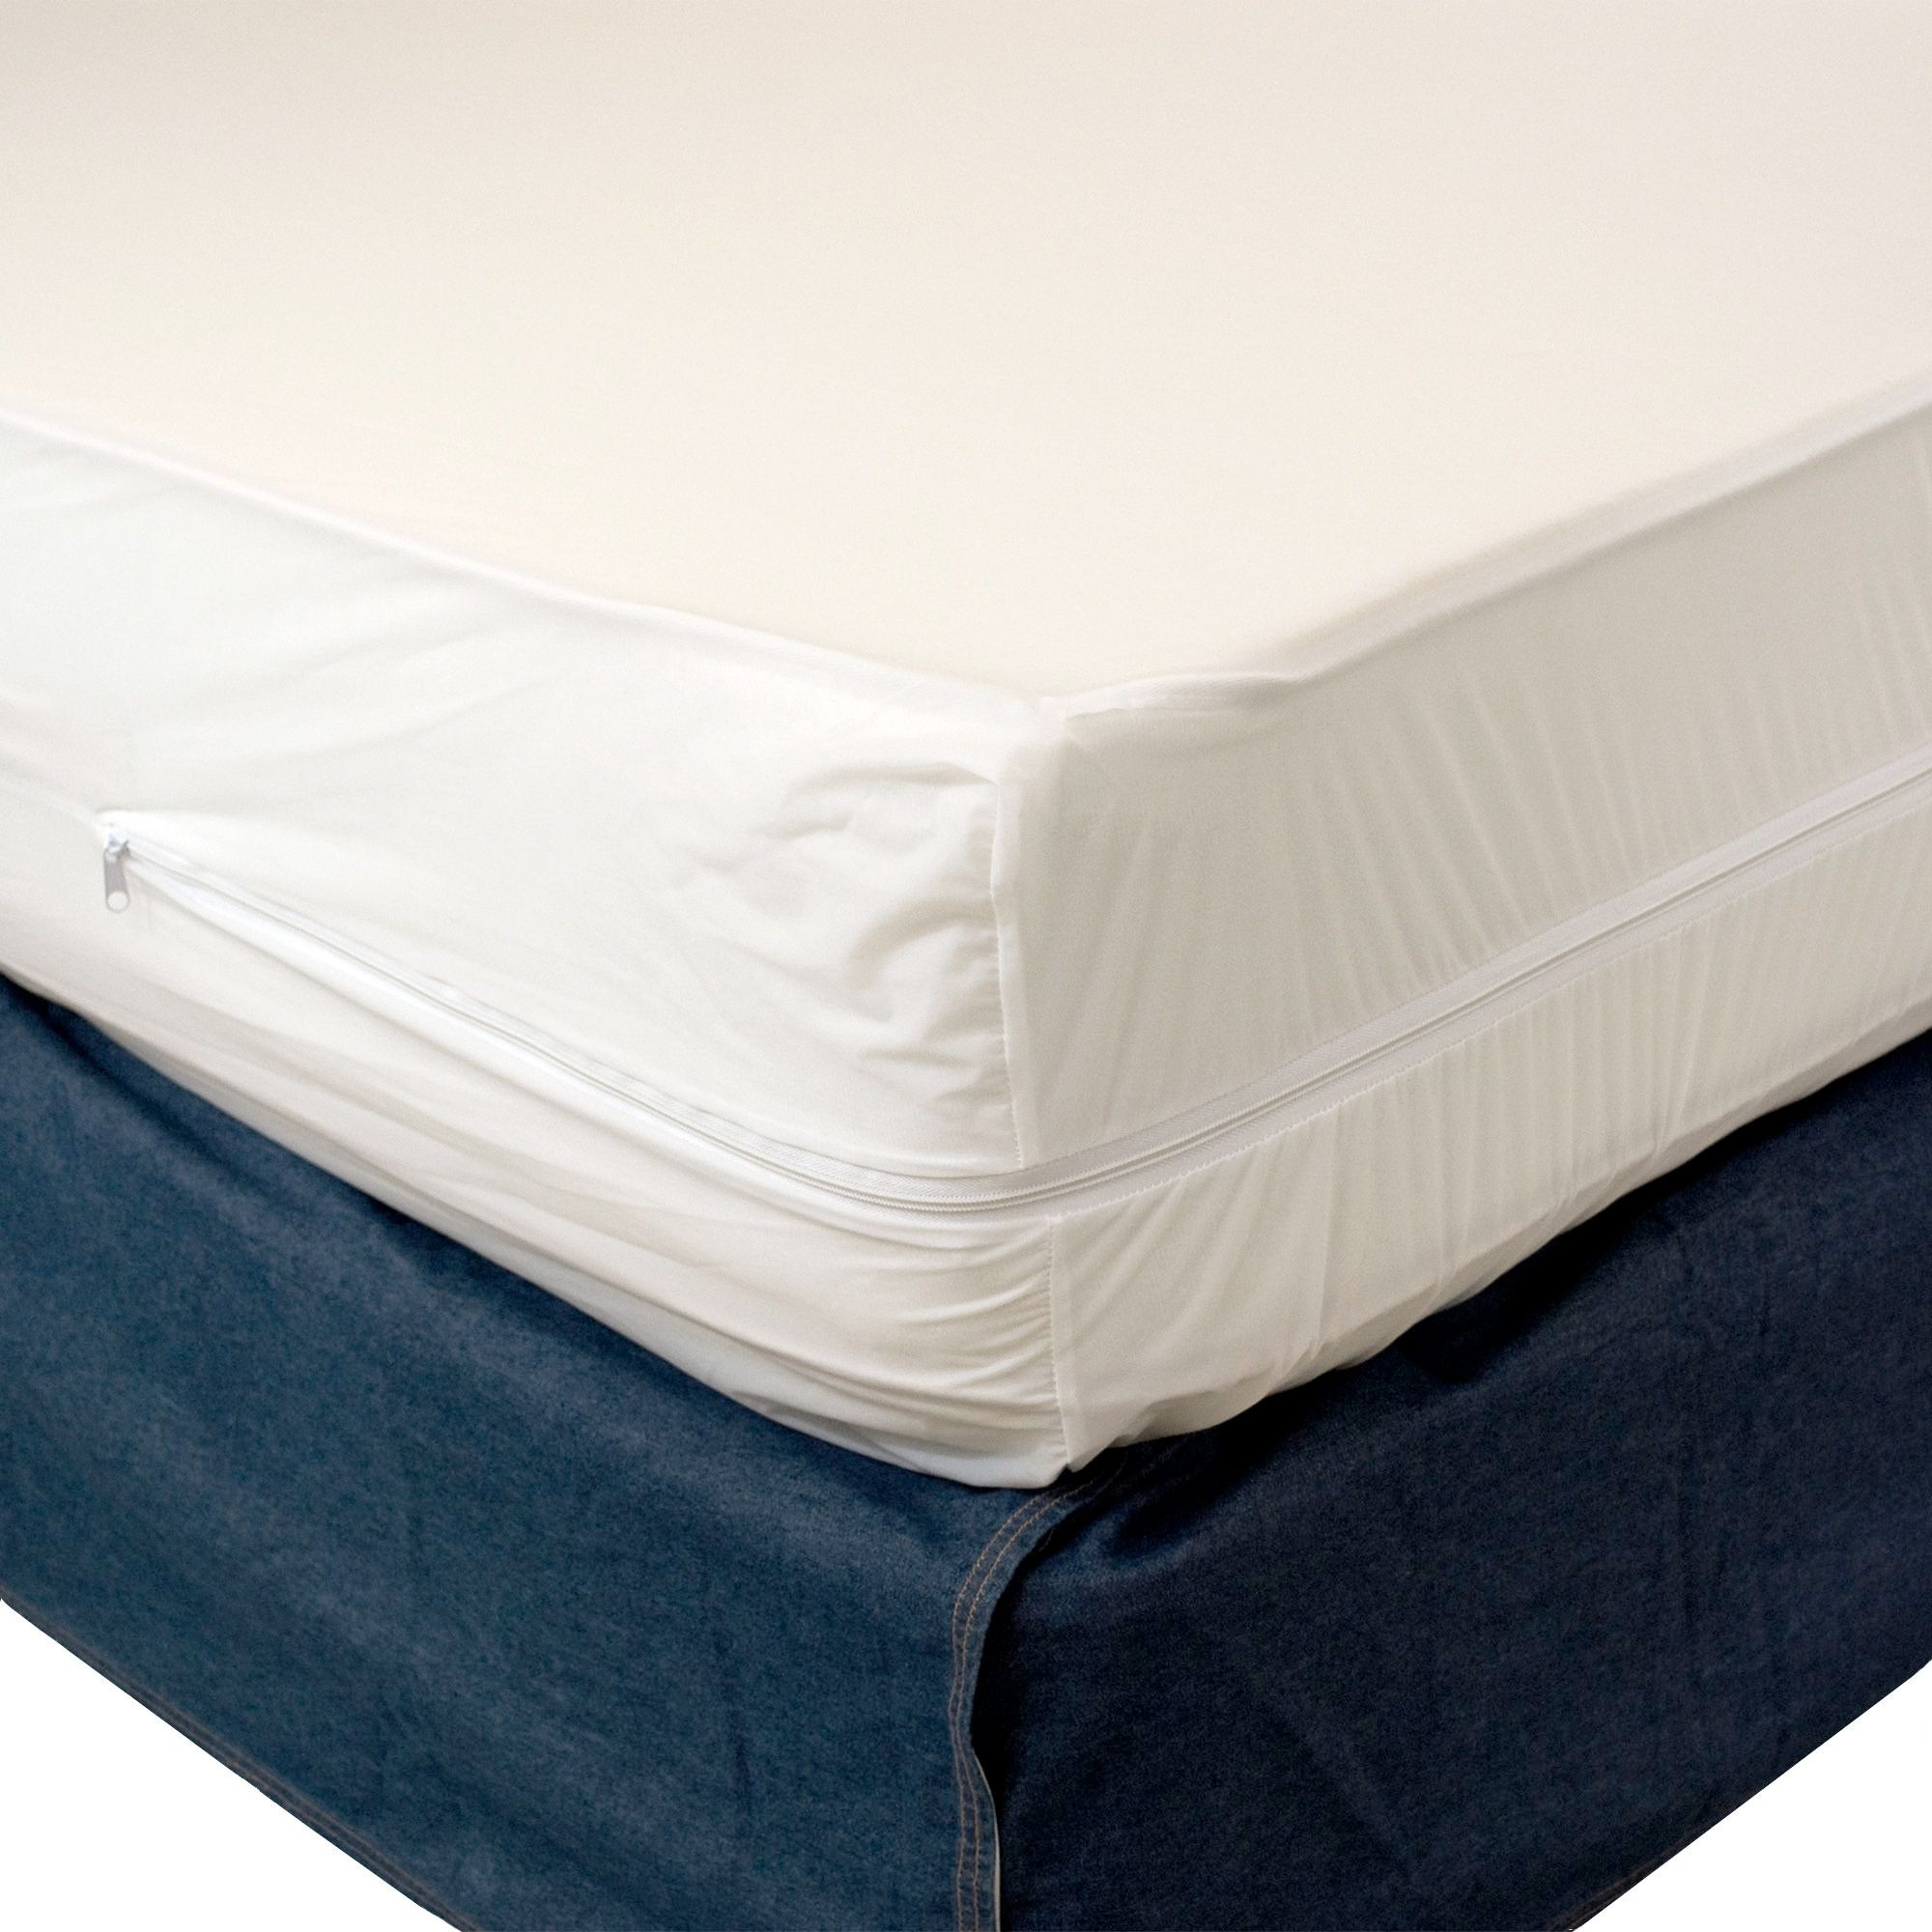 Zippered Covers For Beds